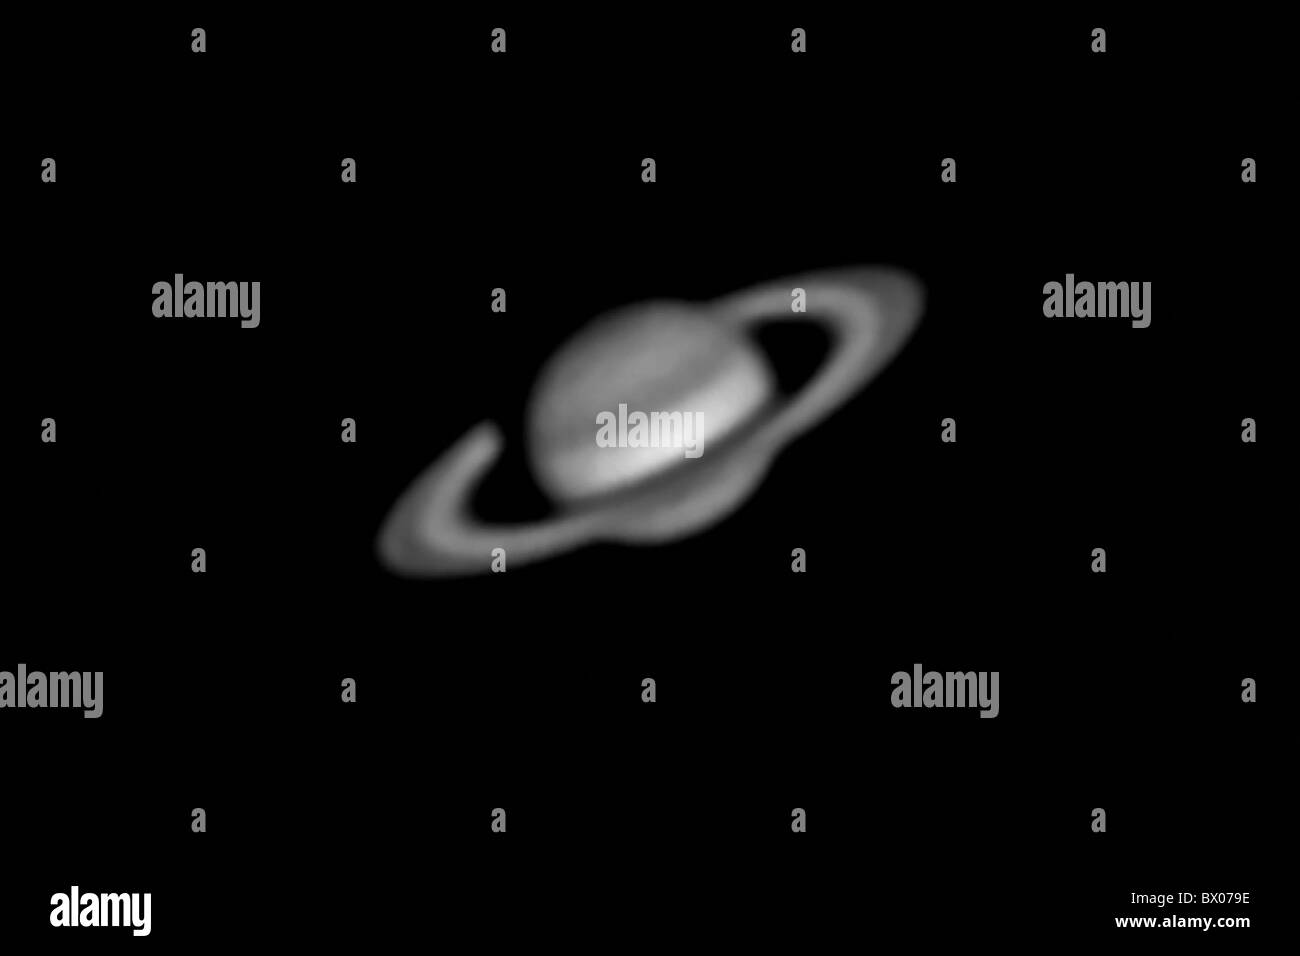 All astronomy planet planet saturn black and white universe macrocosm stock image